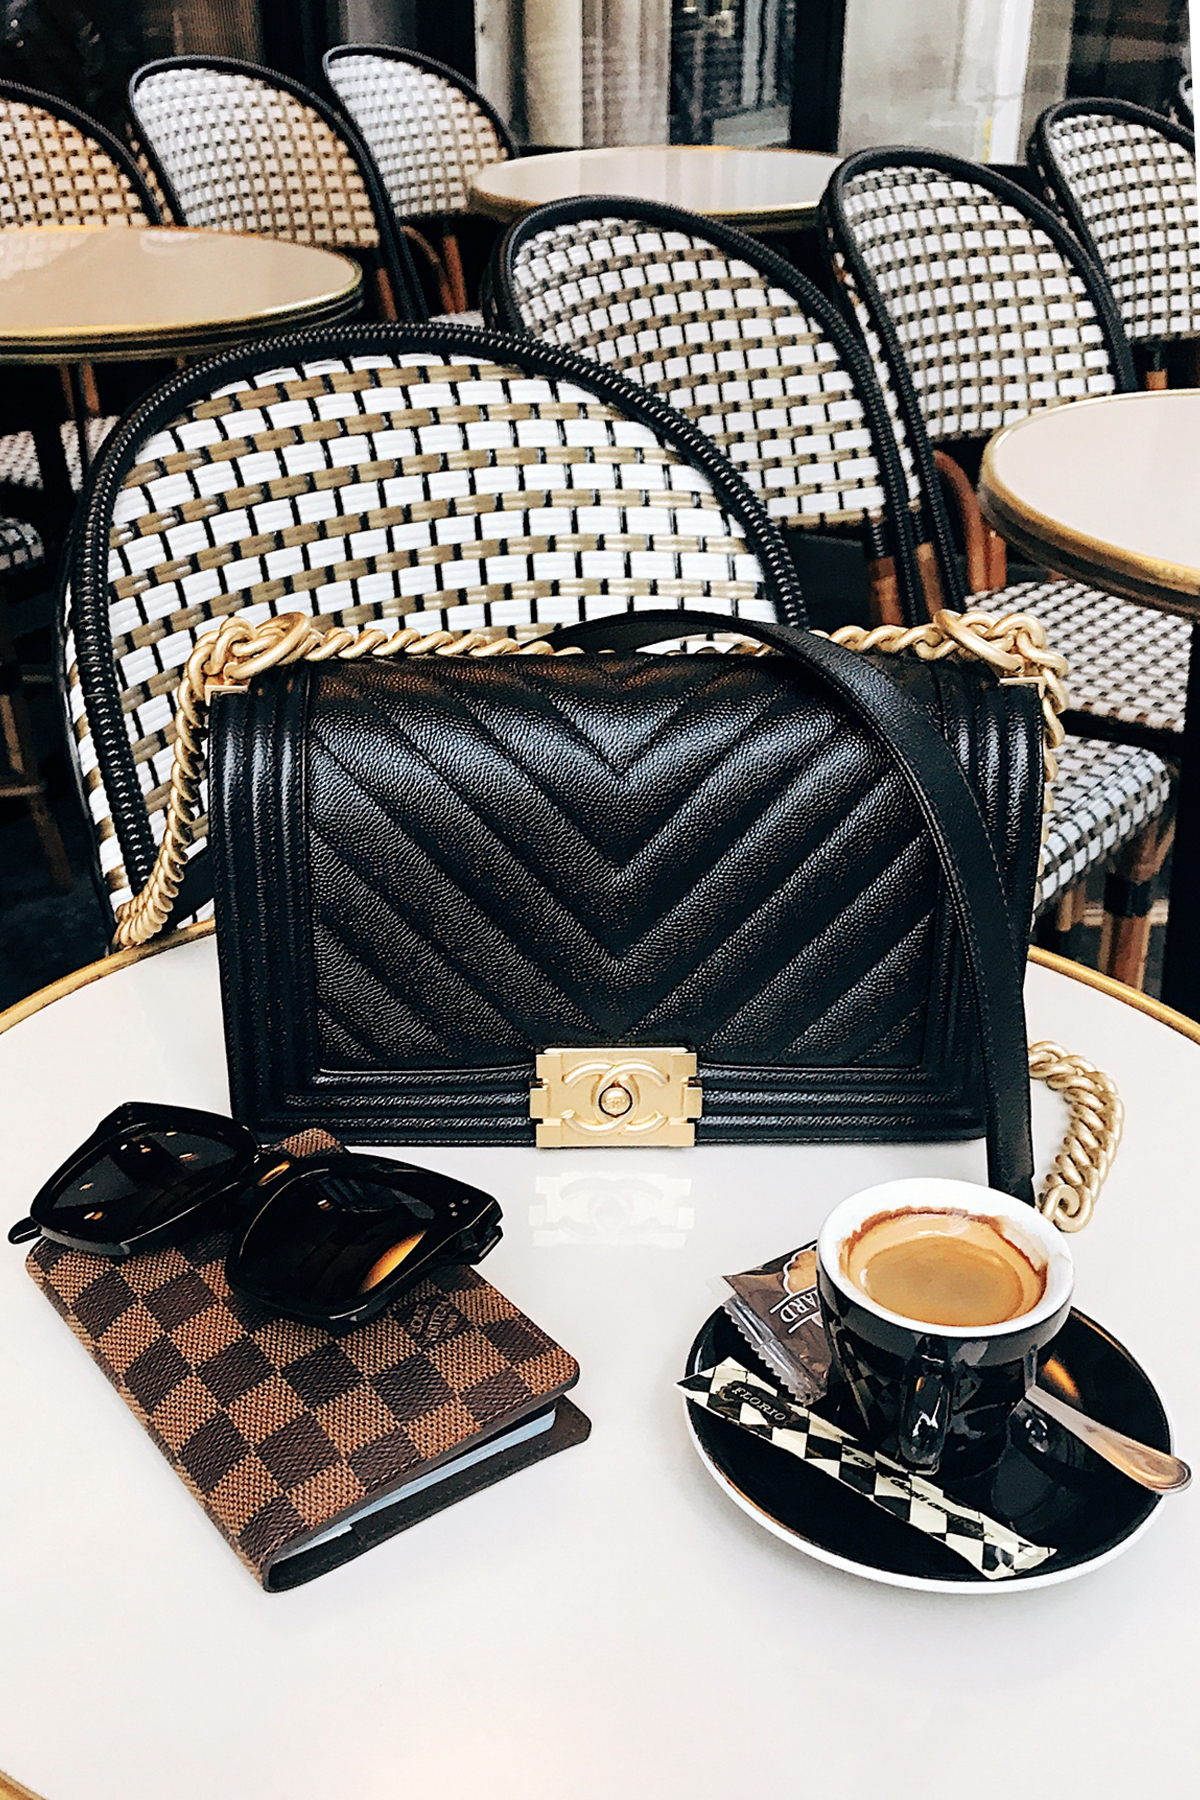 Paris Cafe Chanel Boy Bag Black Chevron Celine Sunglasses Louis Vuitton Passport Holder